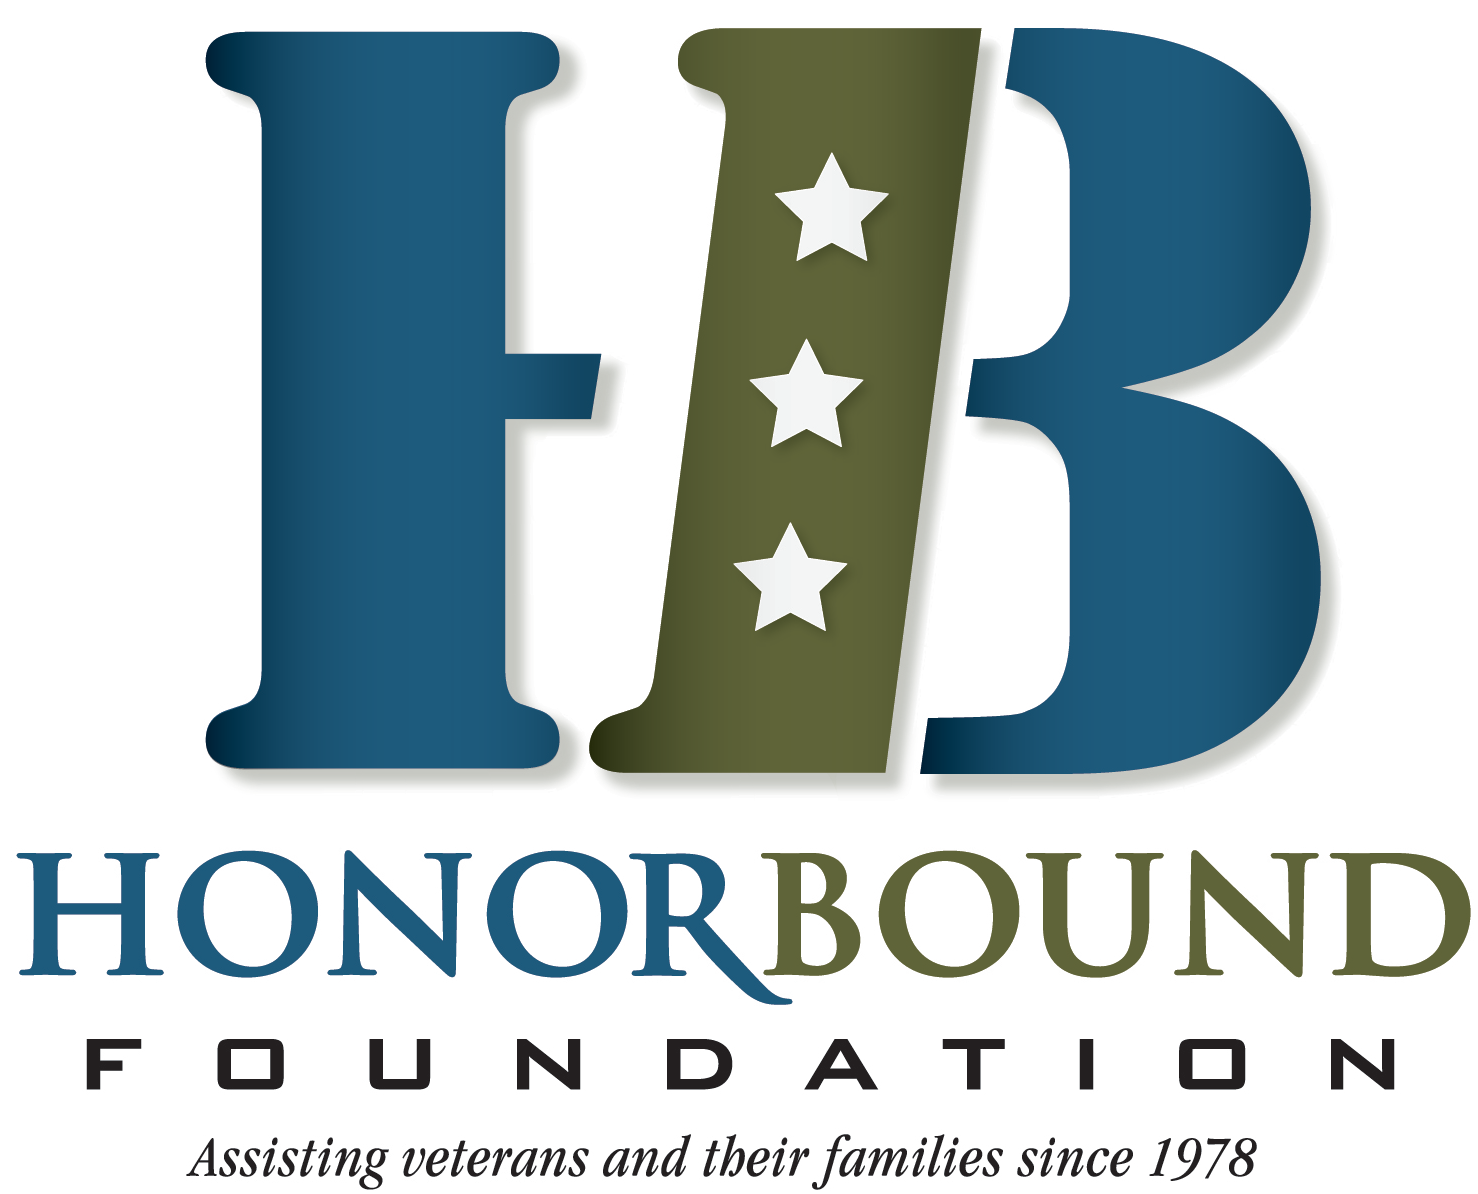 Kentucky Car Donations - HonorBound Foundation - DonatecarUSA.com